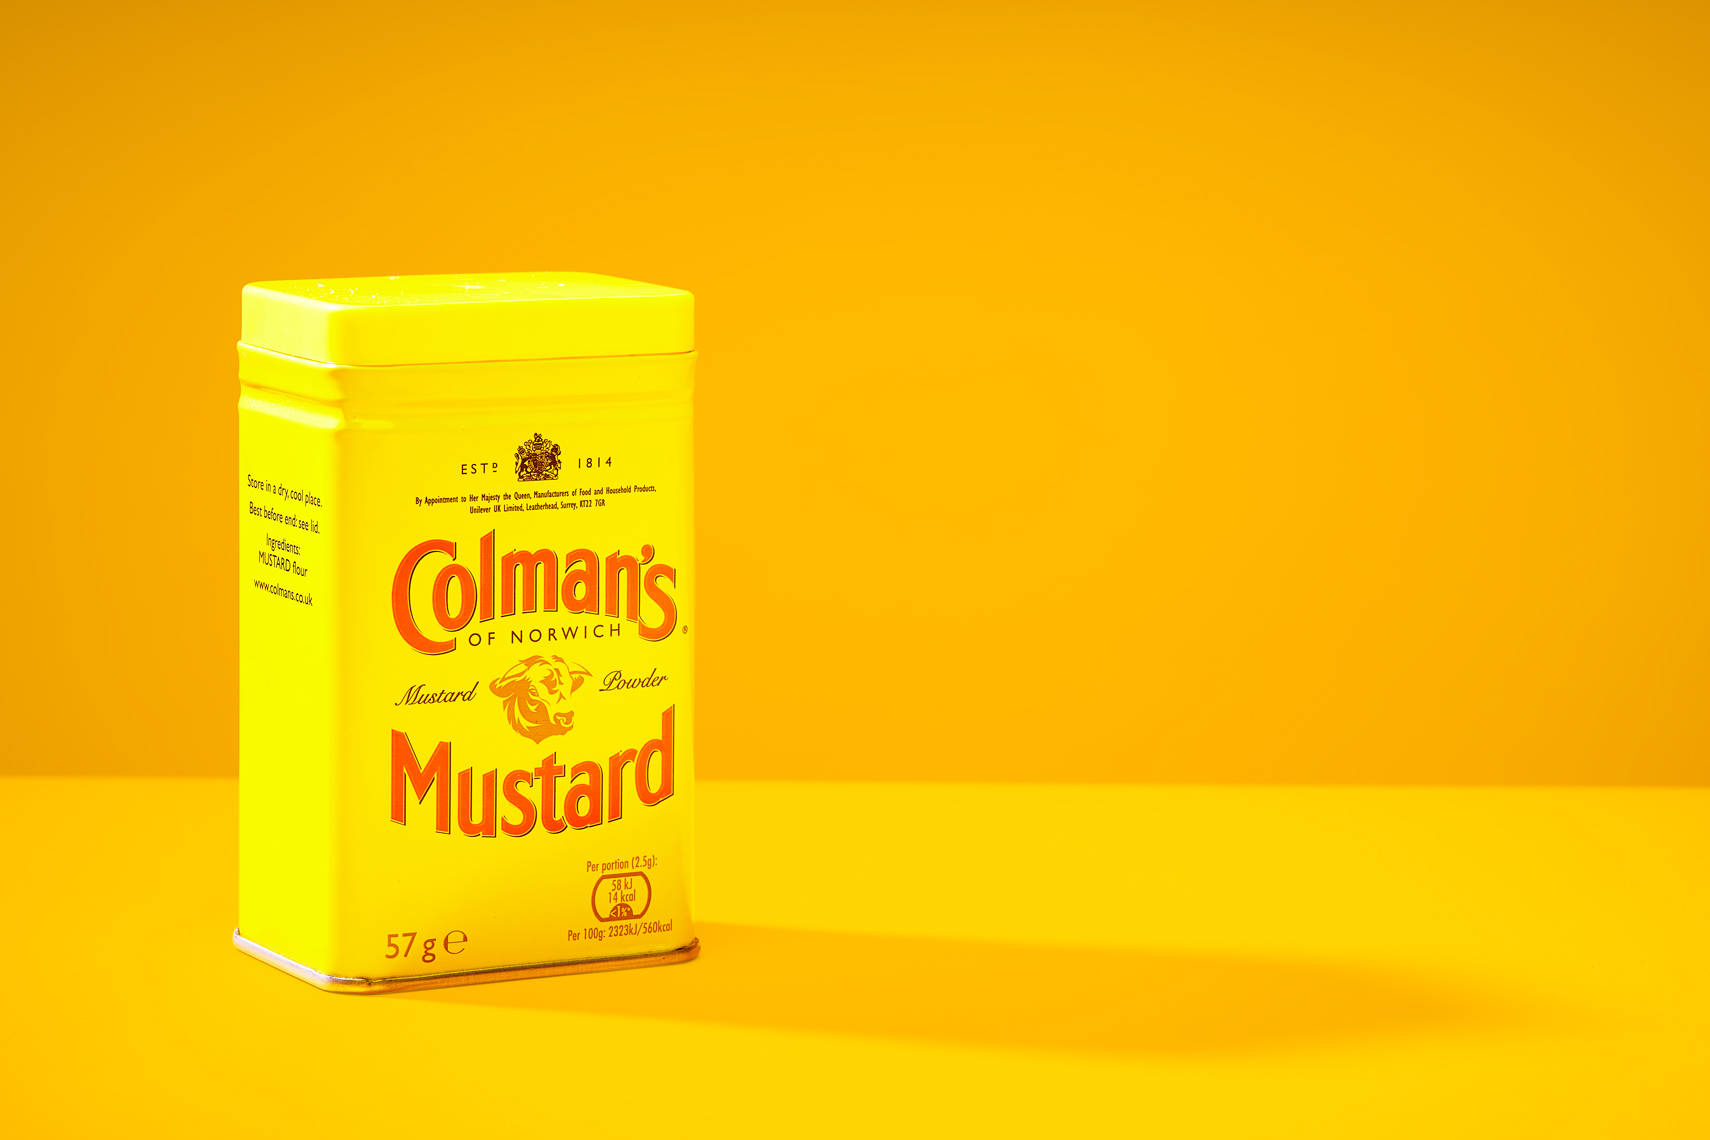 Colmans-Mustard-powder-can-yellow